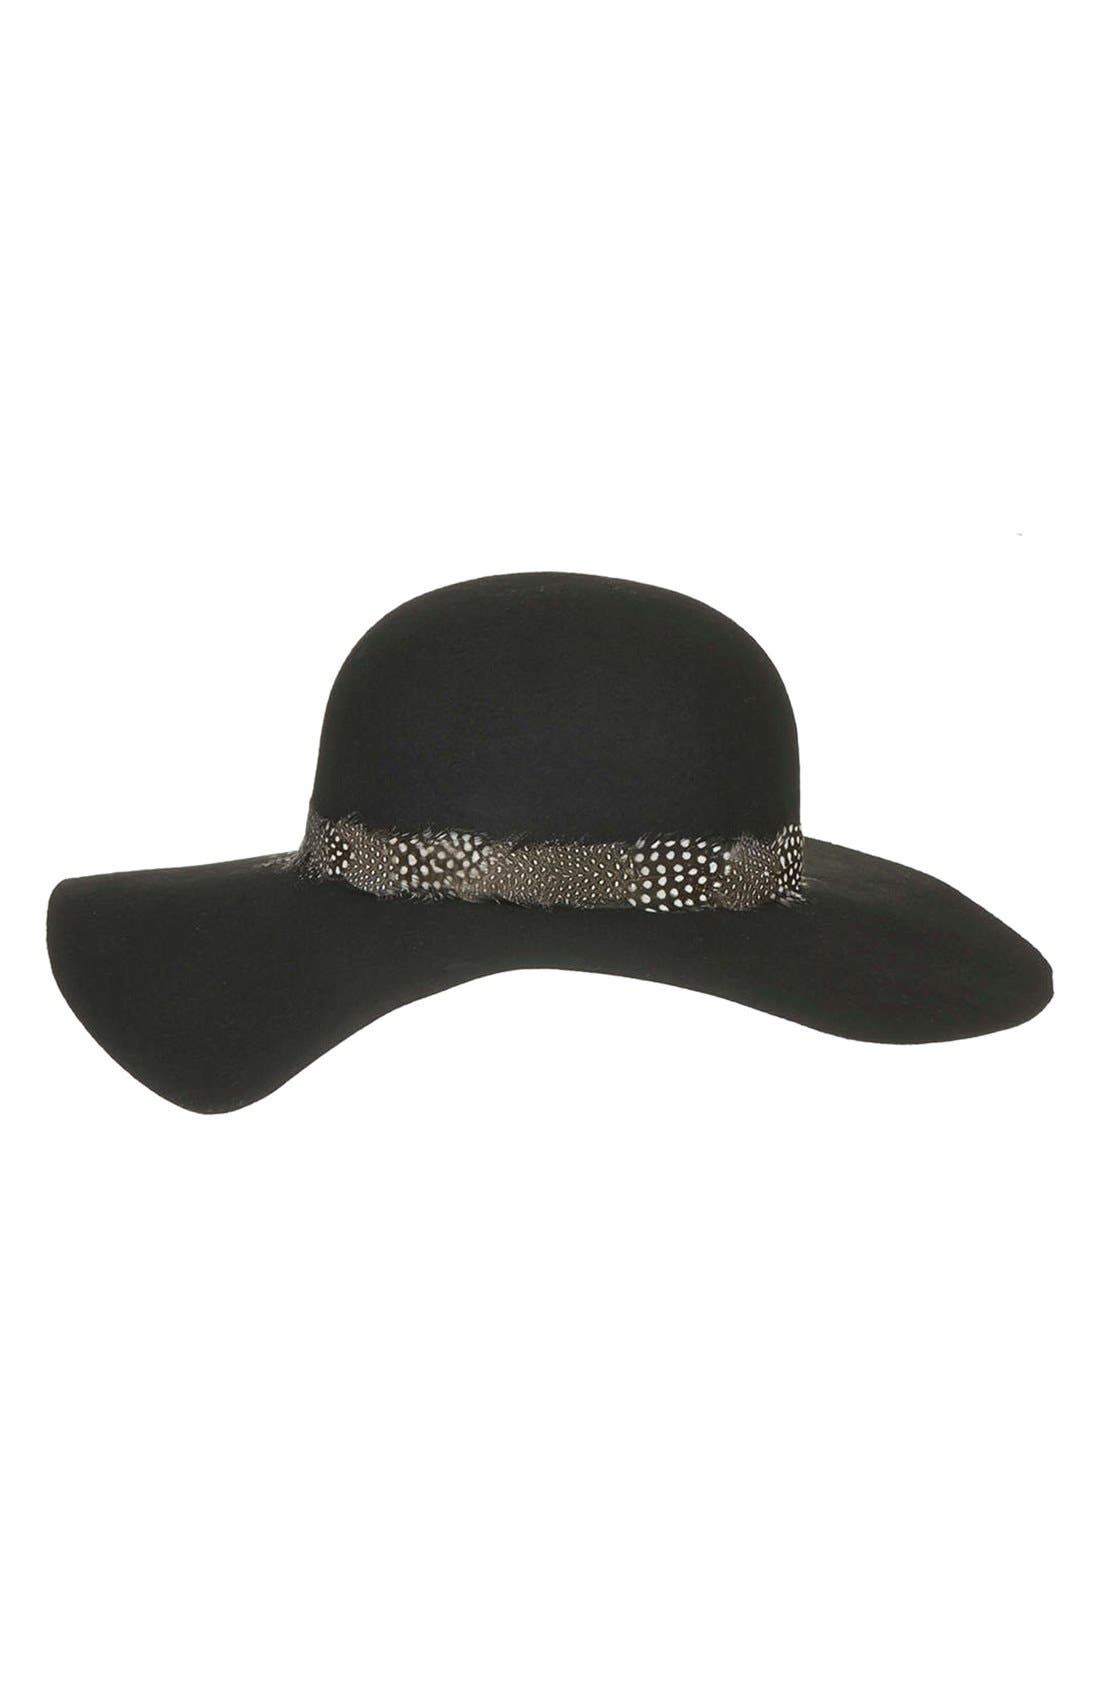 Alternate Image 1 Selected - Topshop Feather Band Floppy Hat